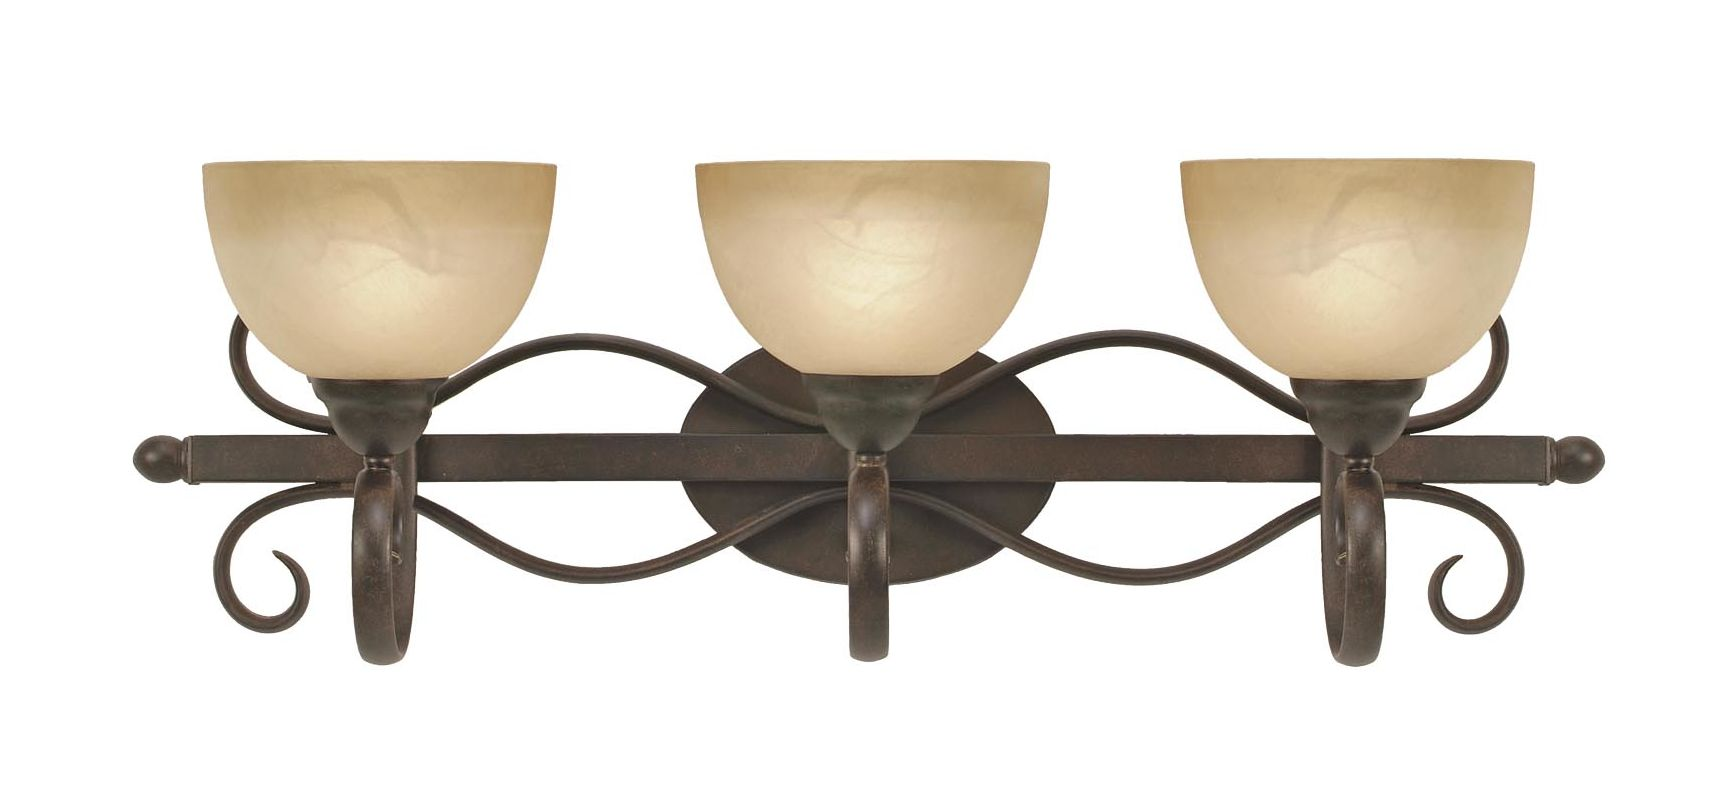 Golden Lighting 1567-BA3 Three Light Bathroom Fixture from the